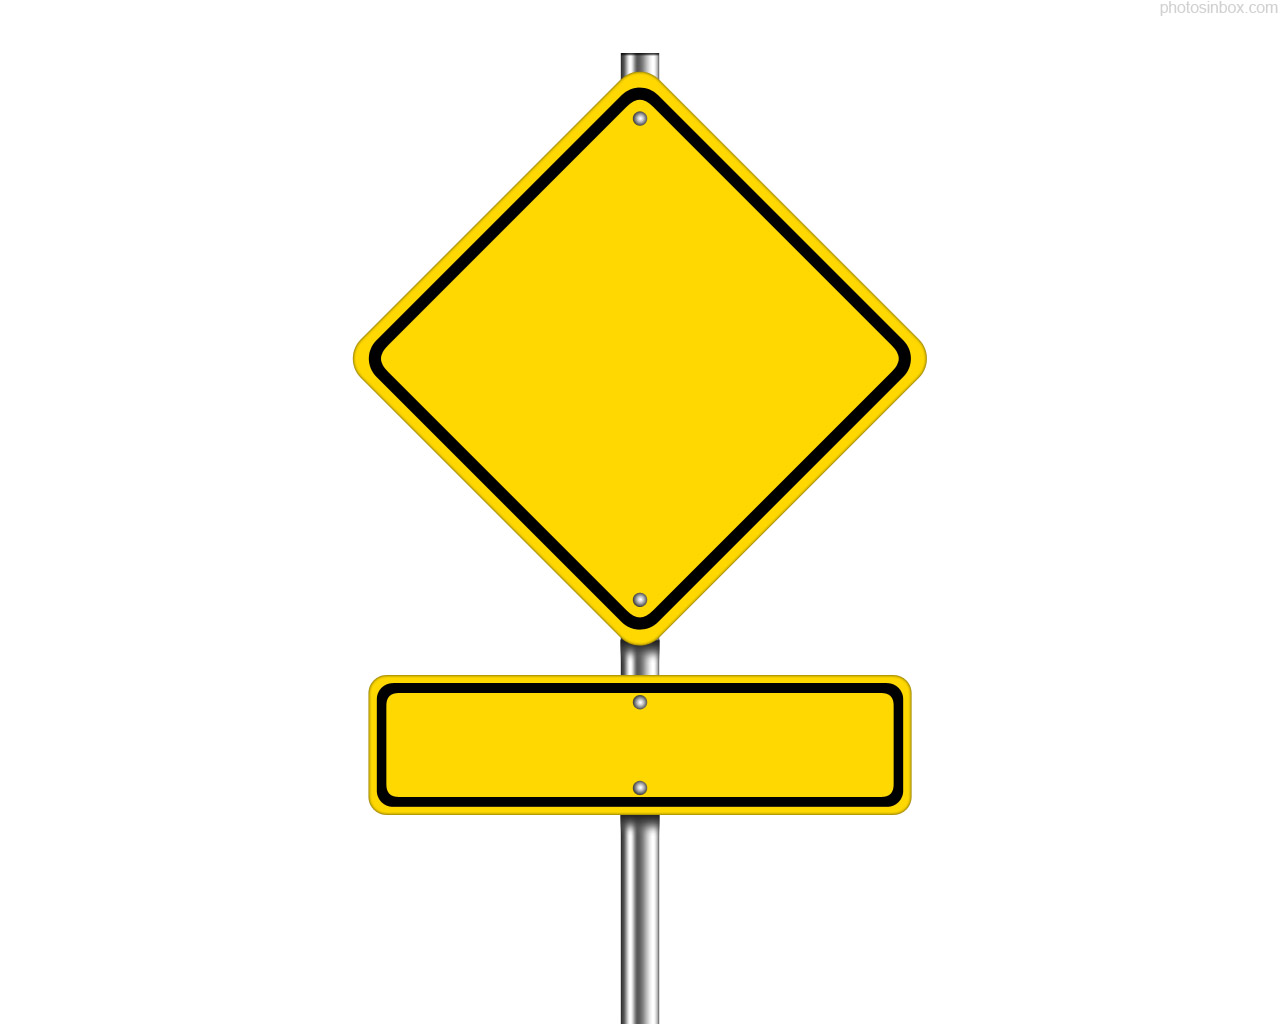 Road Signs Clipart at GetDrawings.com | Free for personal use Road ...